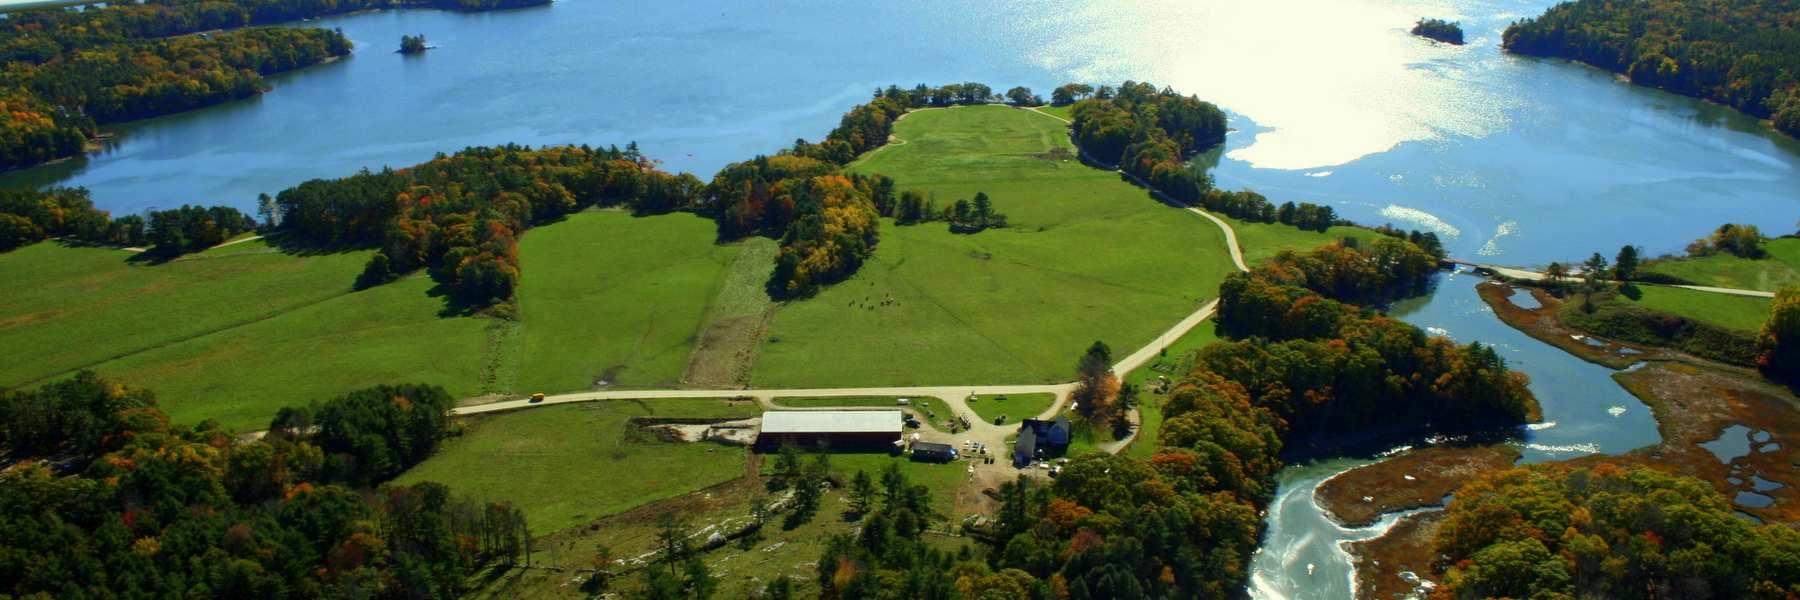 Wolfe's Neck Farm Headquarters and pastureland on Casco Bay